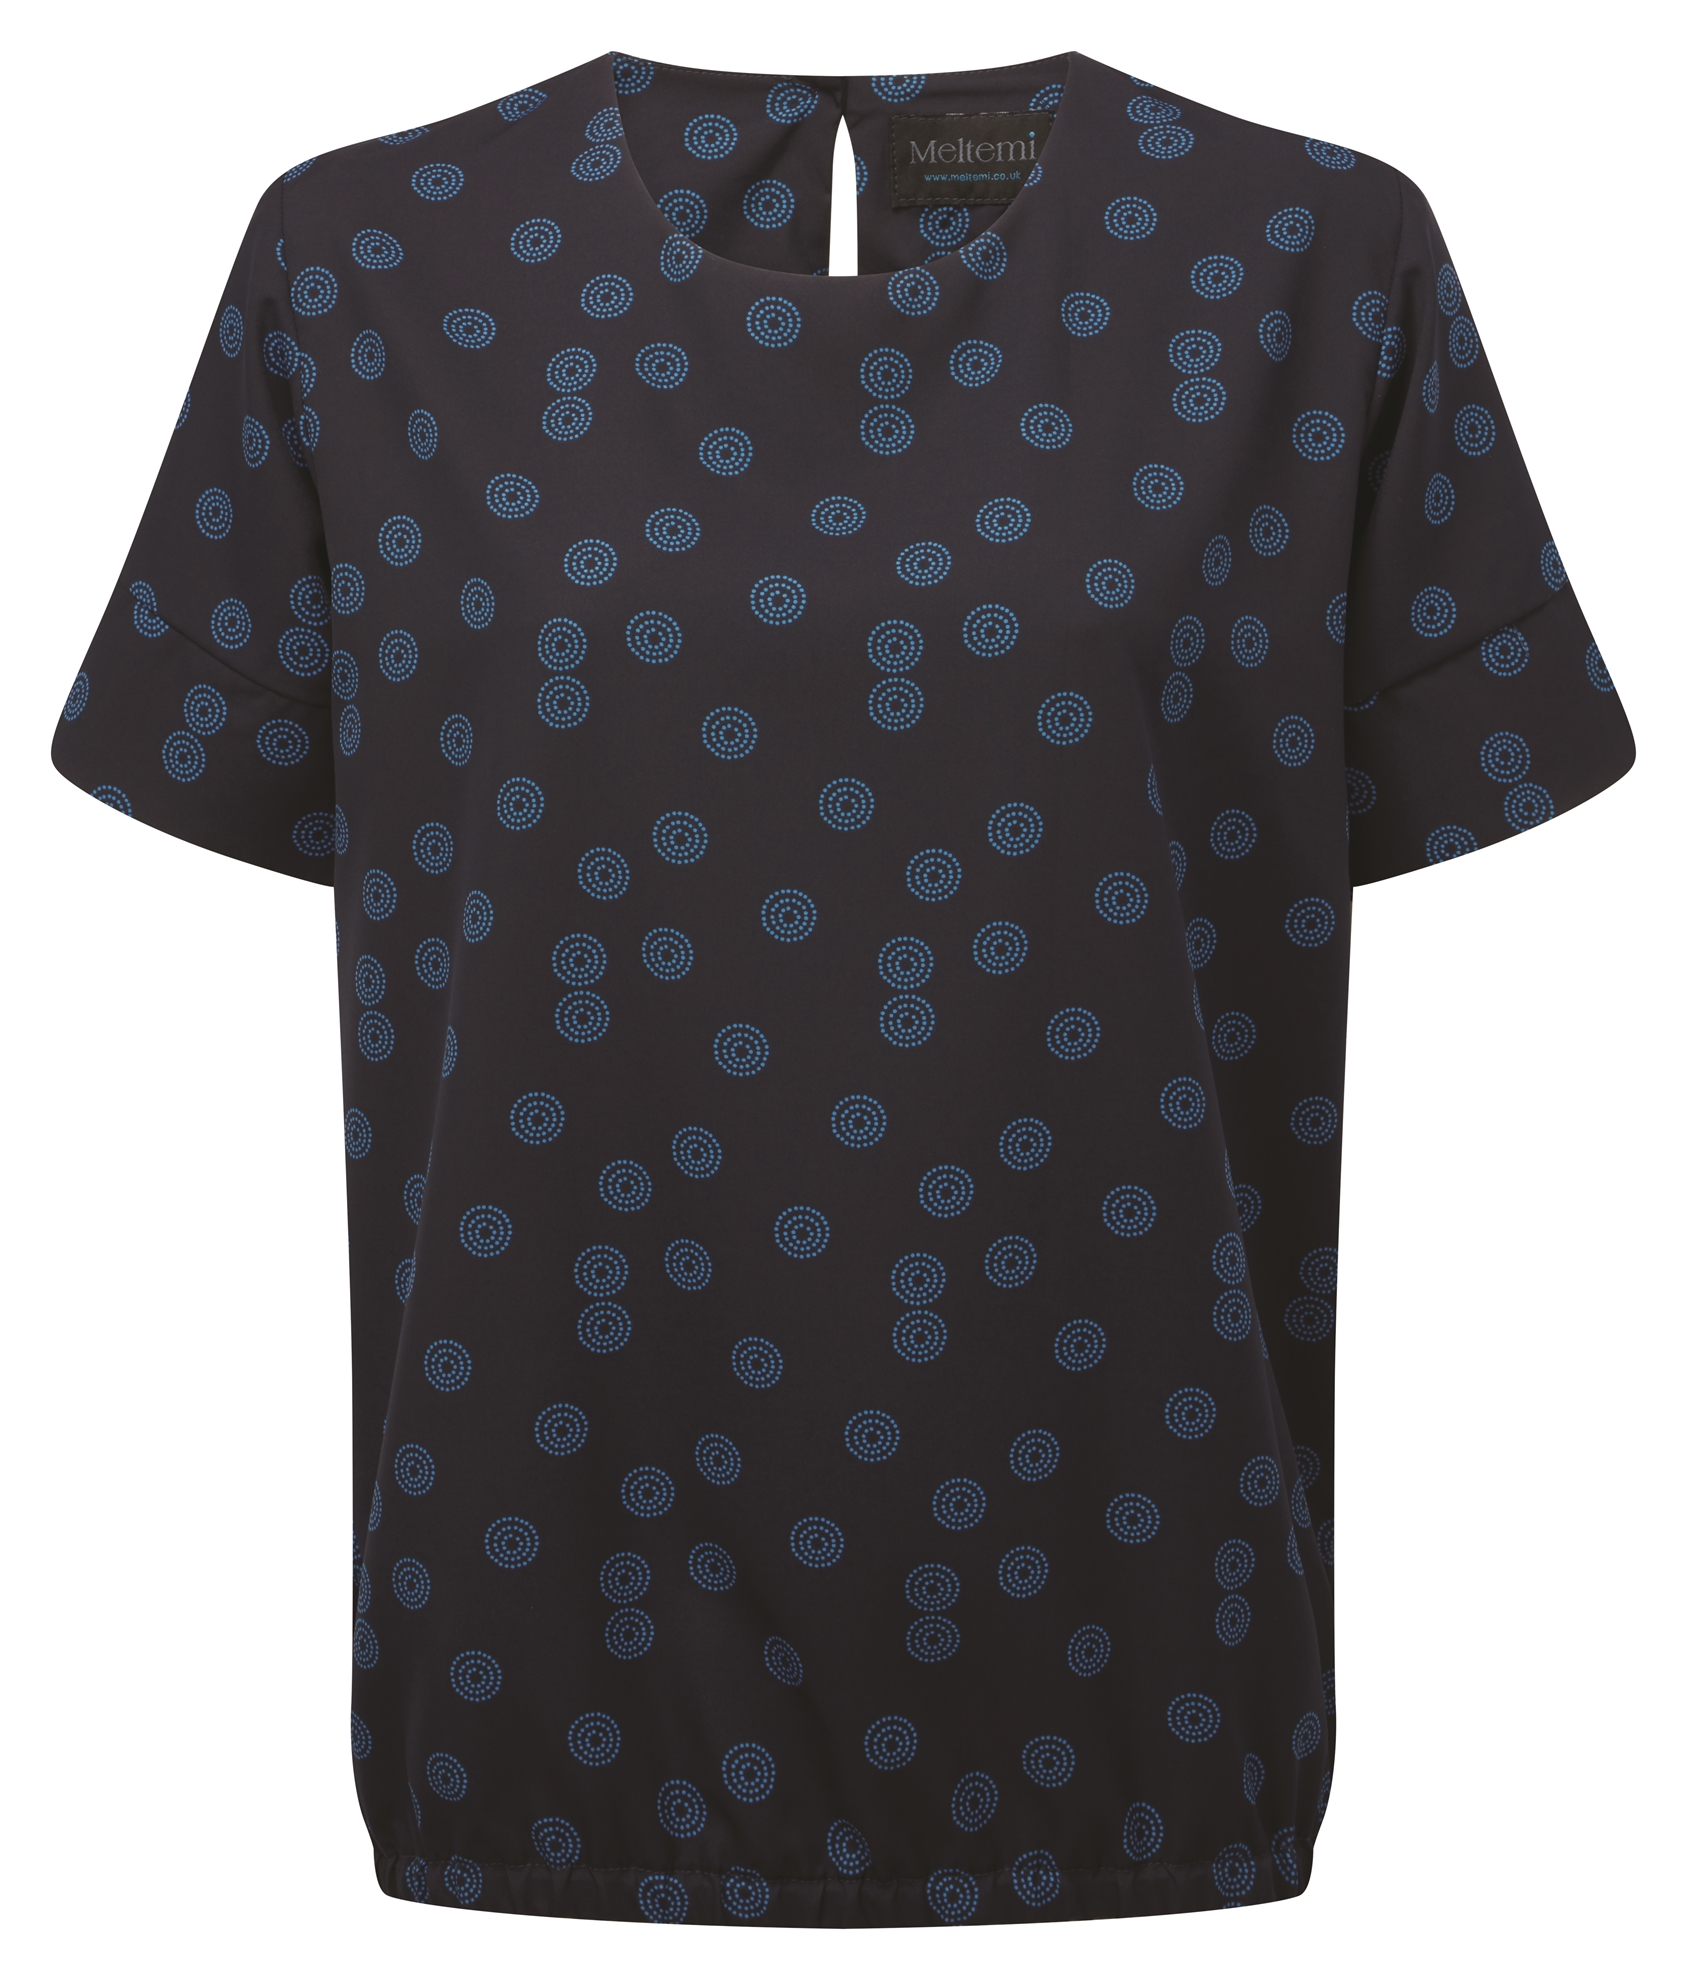 Picture of Looser Fit CoolWeave Blouson Style Blouse - Navy/Blue Sienna Print